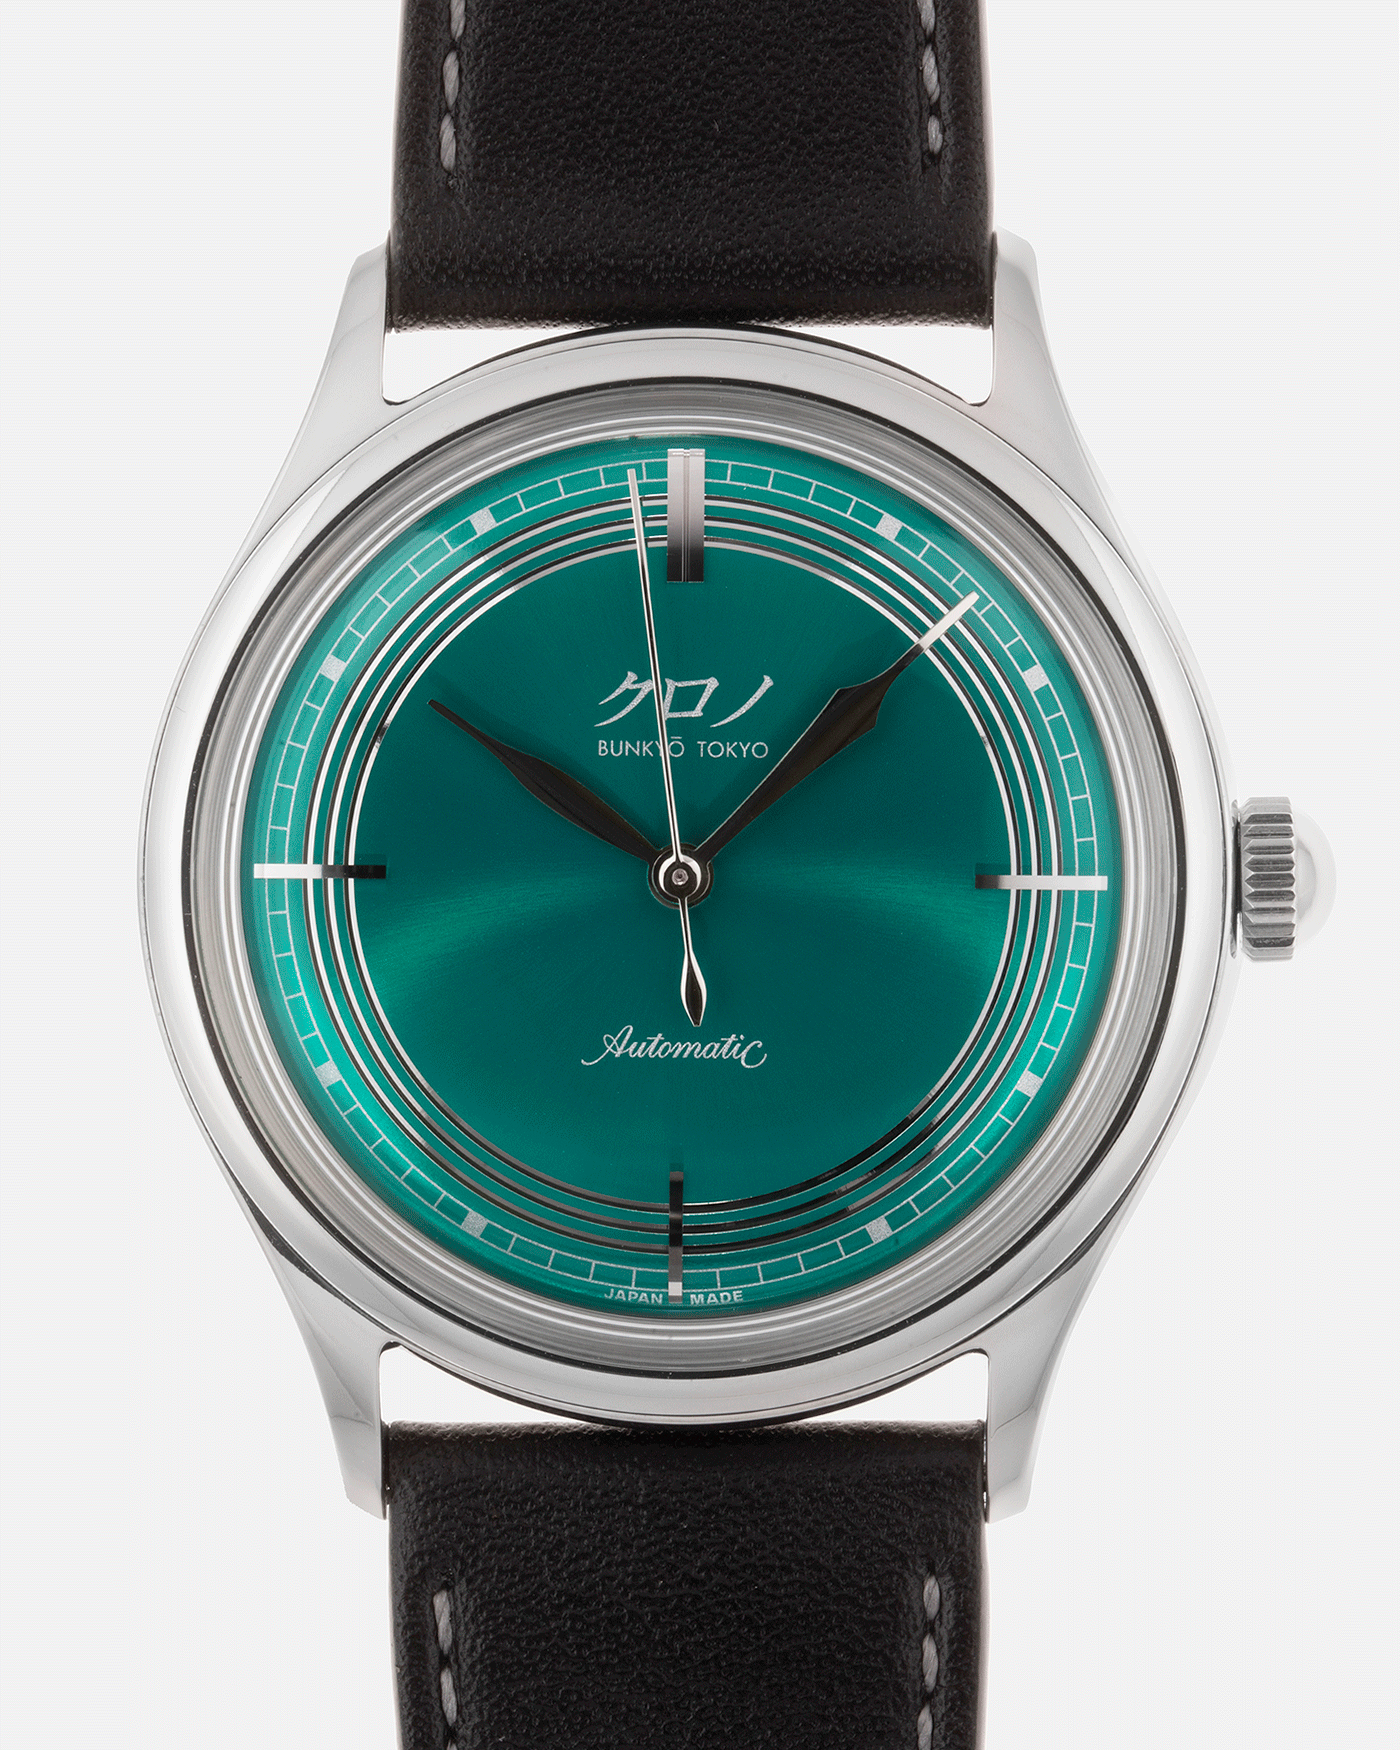 Brand: Kurono Year: 2020 Model: Mori Material: Stainless Steel Movement: Miyota 90S5 Case Diameter: 37mm Strap: Kurono Dark Green Calf